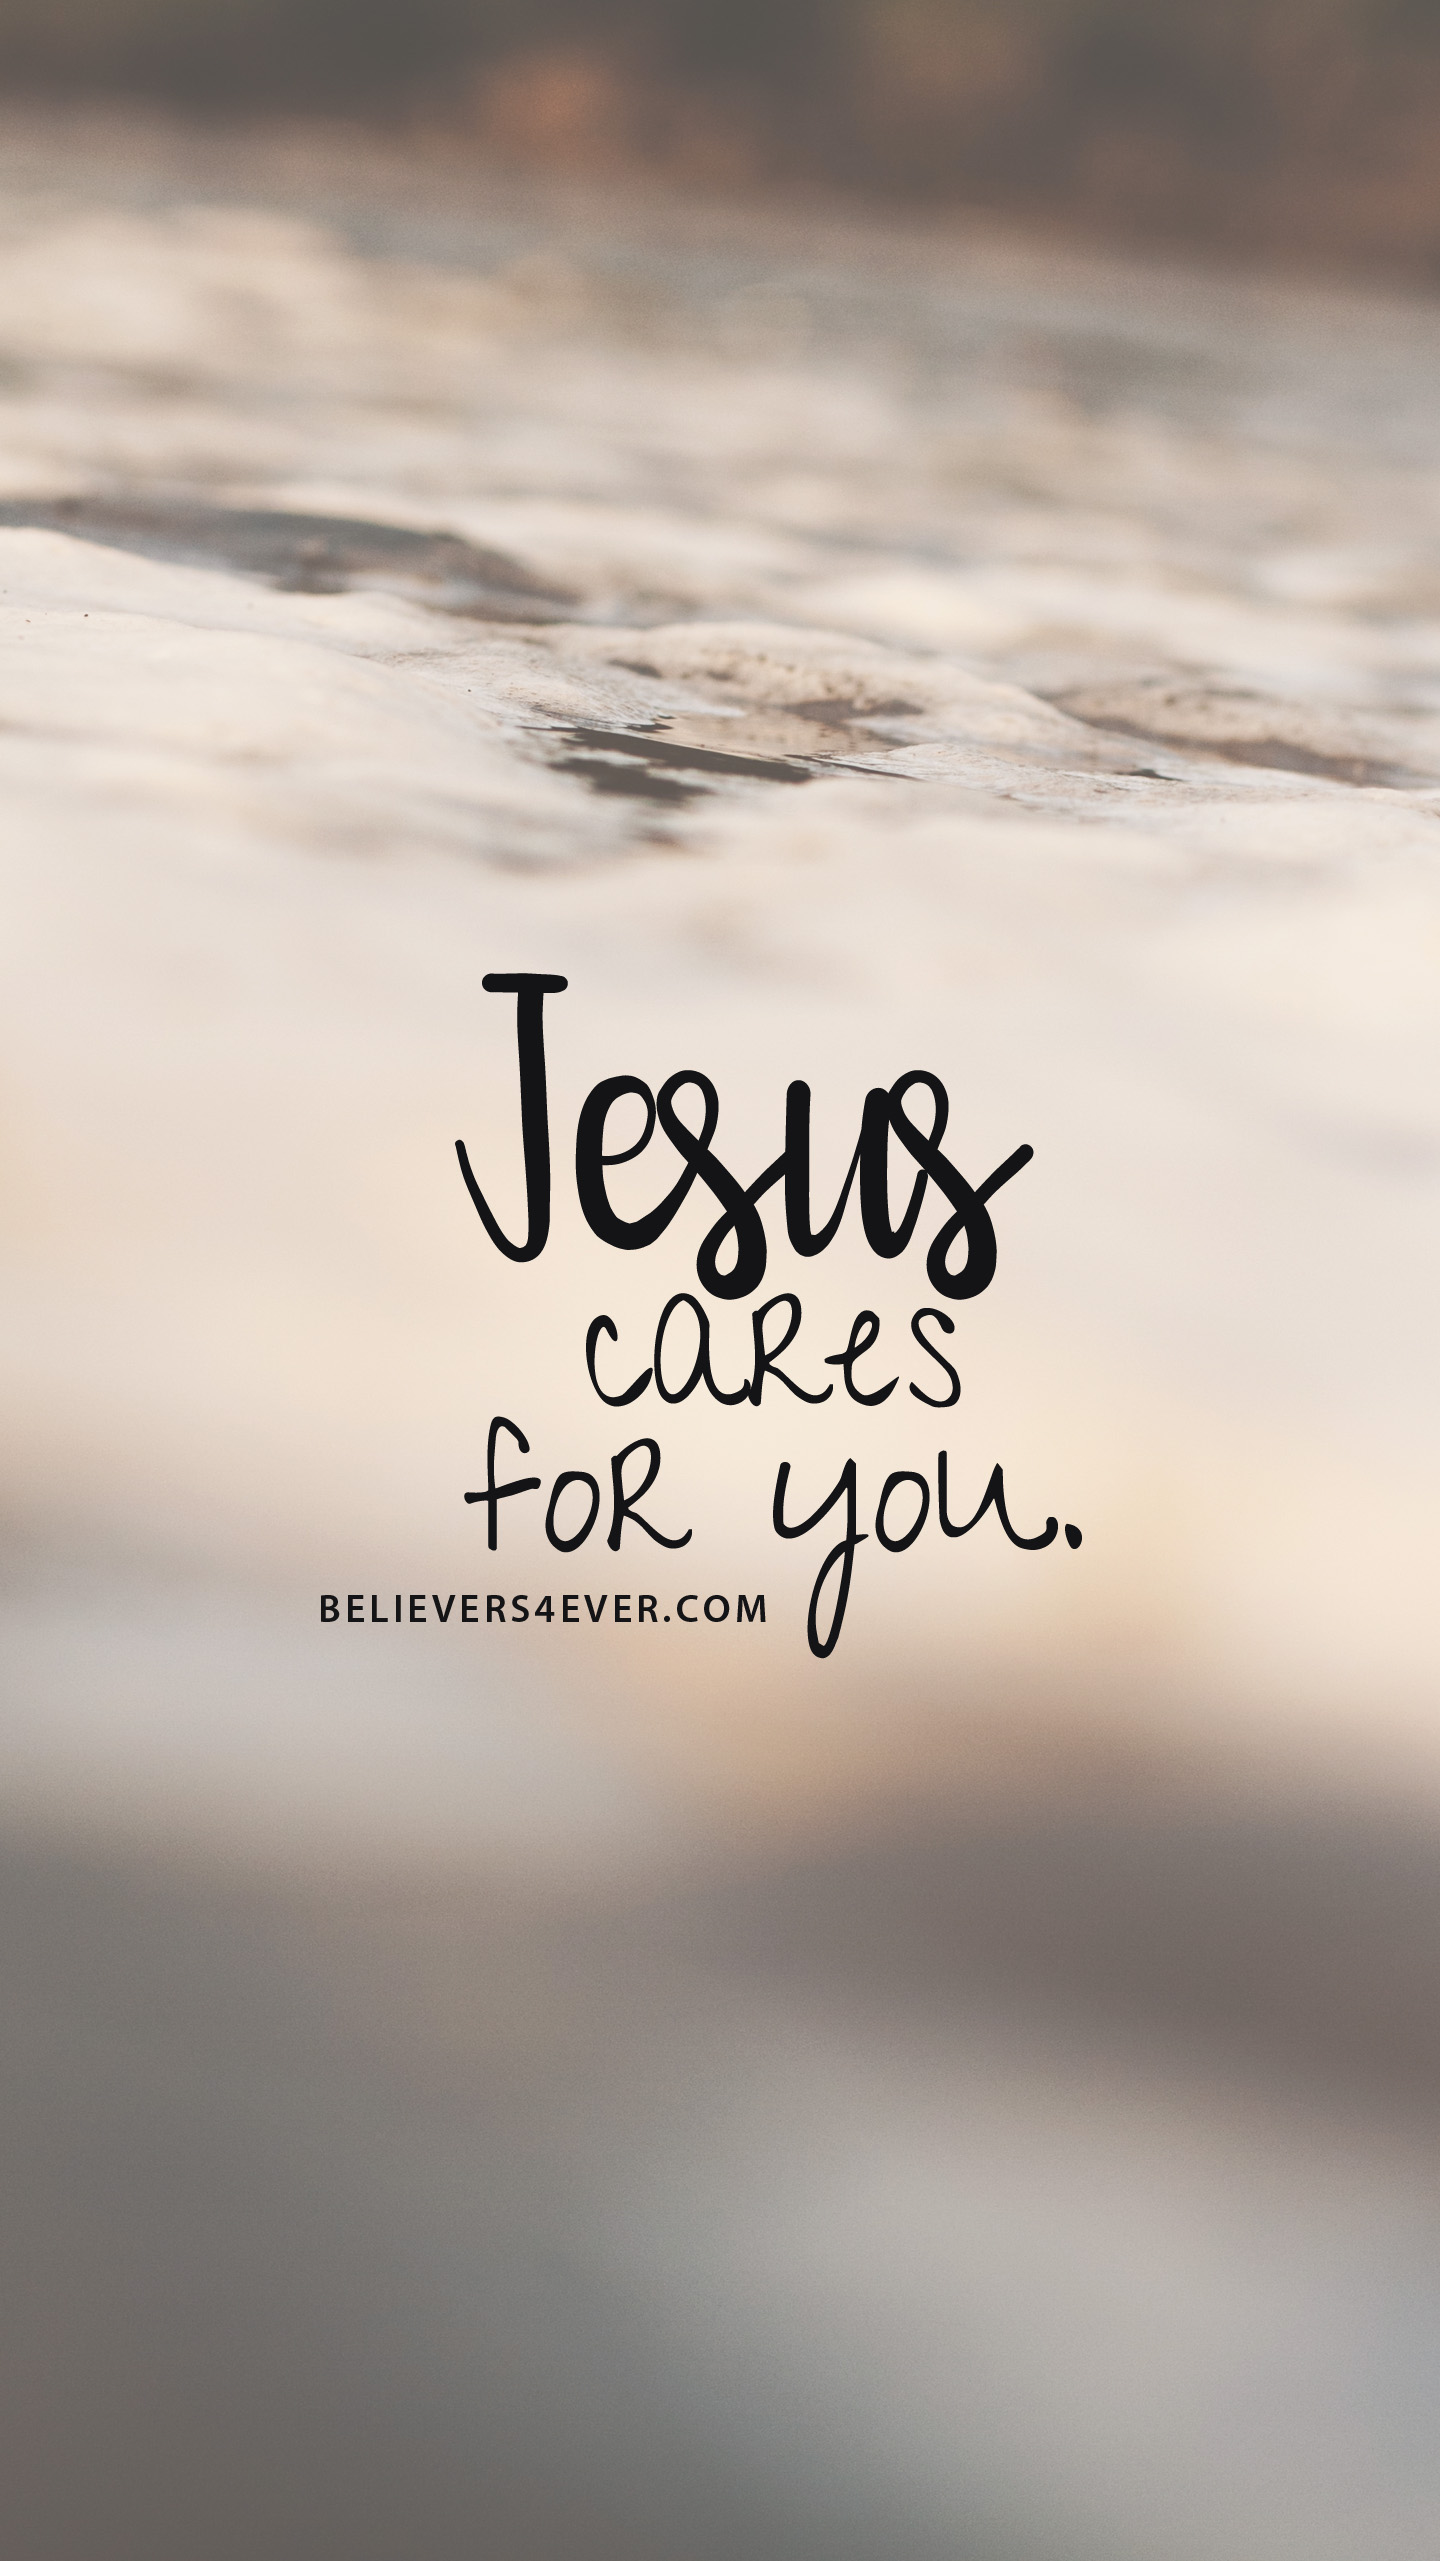 Jesus Cares For You Android Bible Verse Wallpaper Hd 1440x2561 Download Hd Wallpaper Wallpapertip